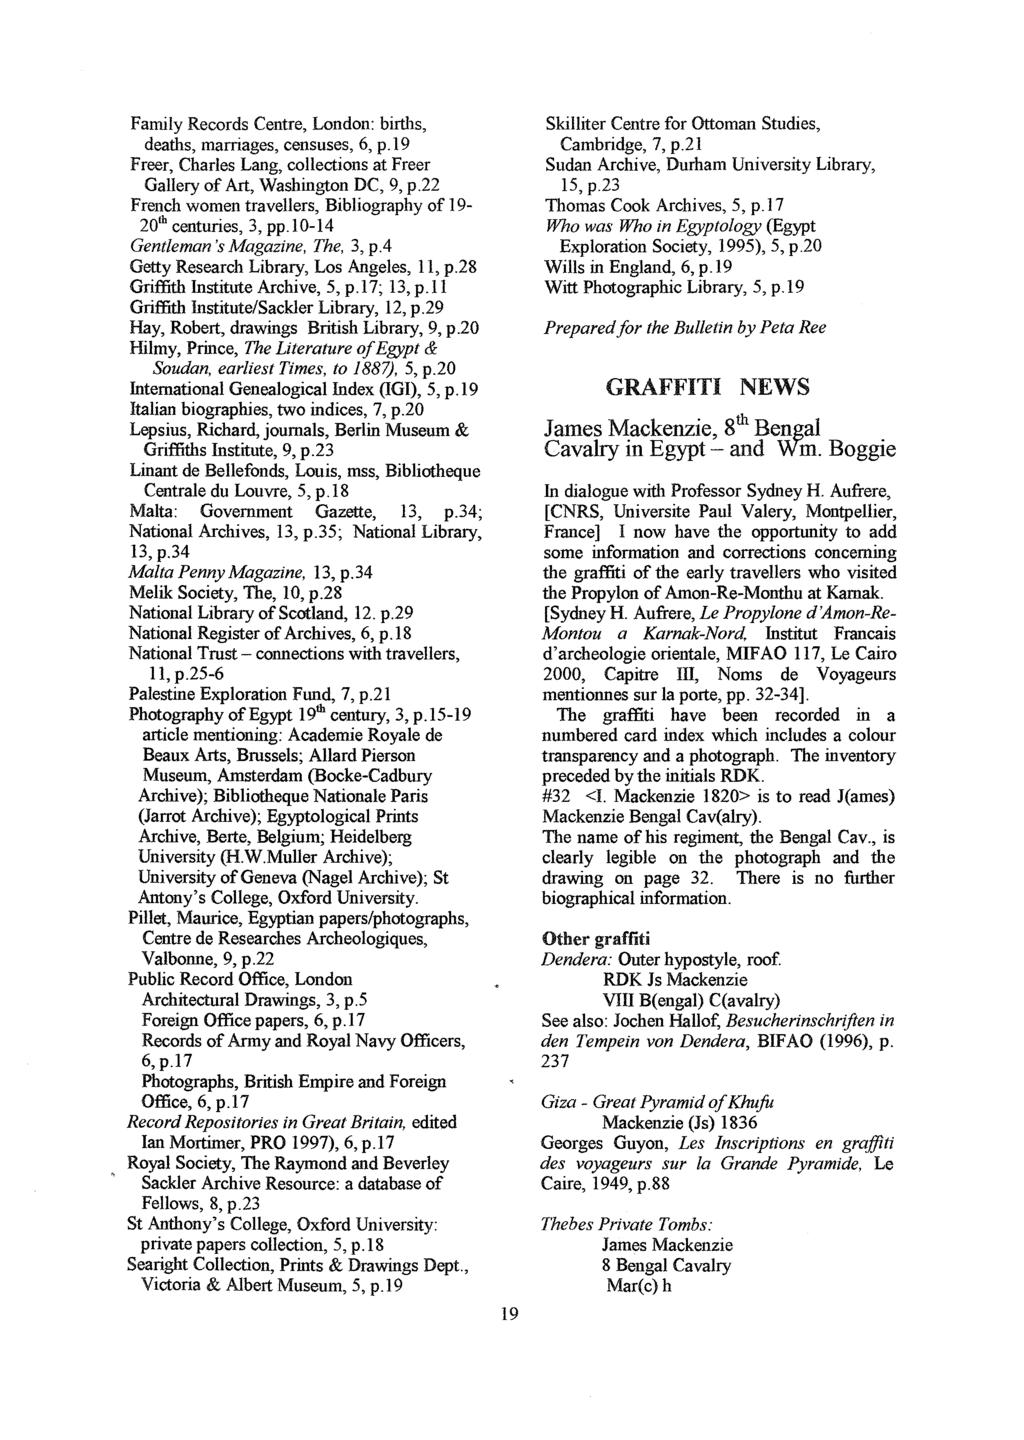 Family Records Centre, London: births, deaths, marriages, censuses, 6, p.19 Freer, Charles Lang, collections at Freer Gallery of Art, Washington DC, 9, p.